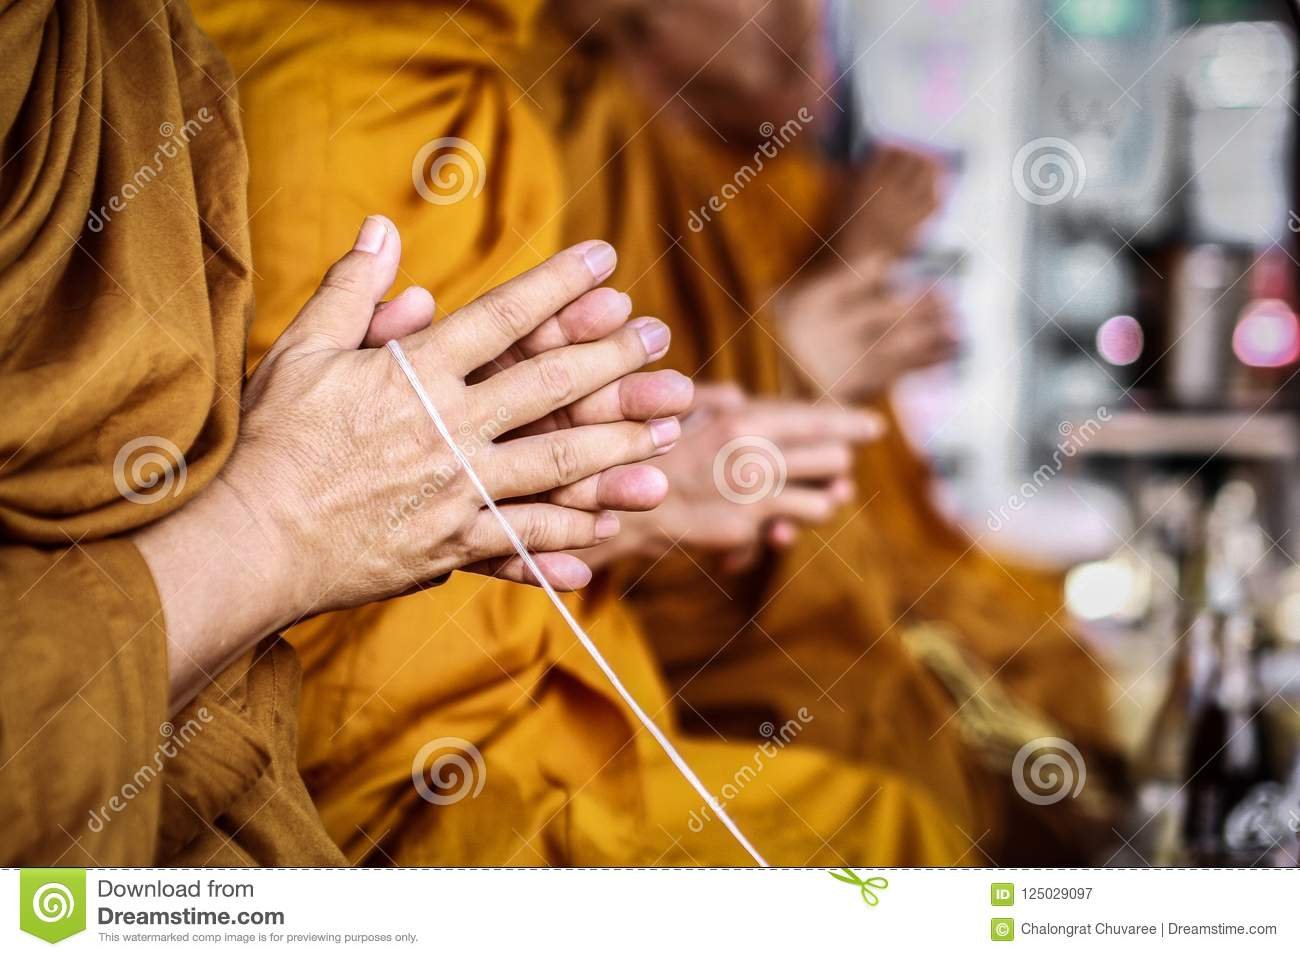 Monks chant on background blurred